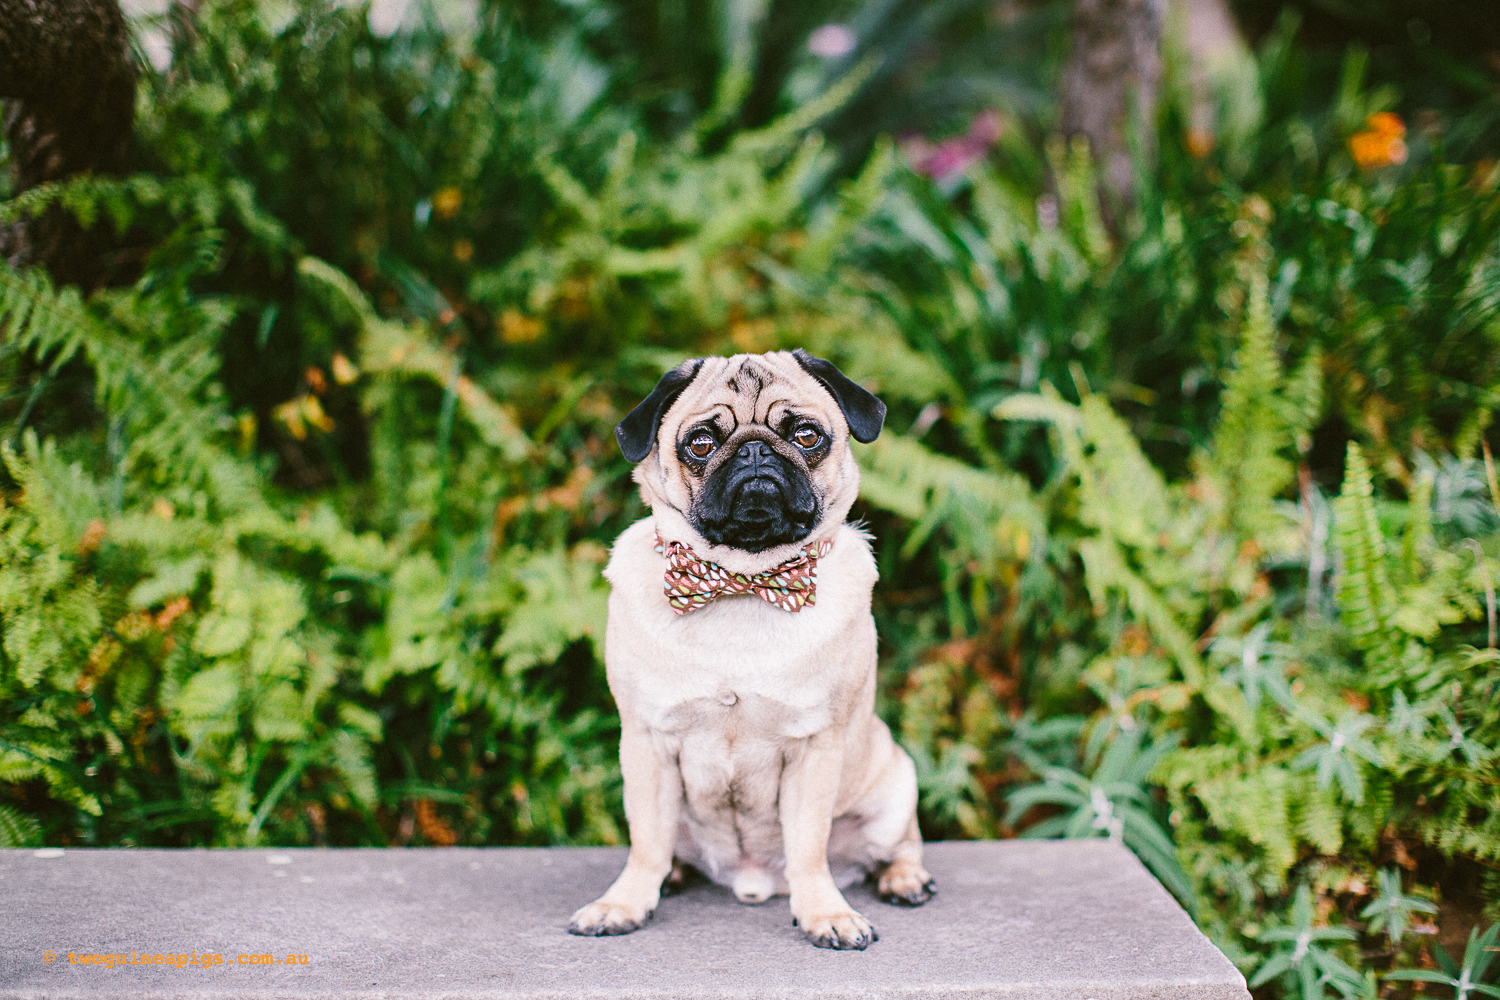 twoguineapigs_pet_photography_oh_jaffa_picnic_pugs_rodger_1500-27.jpg